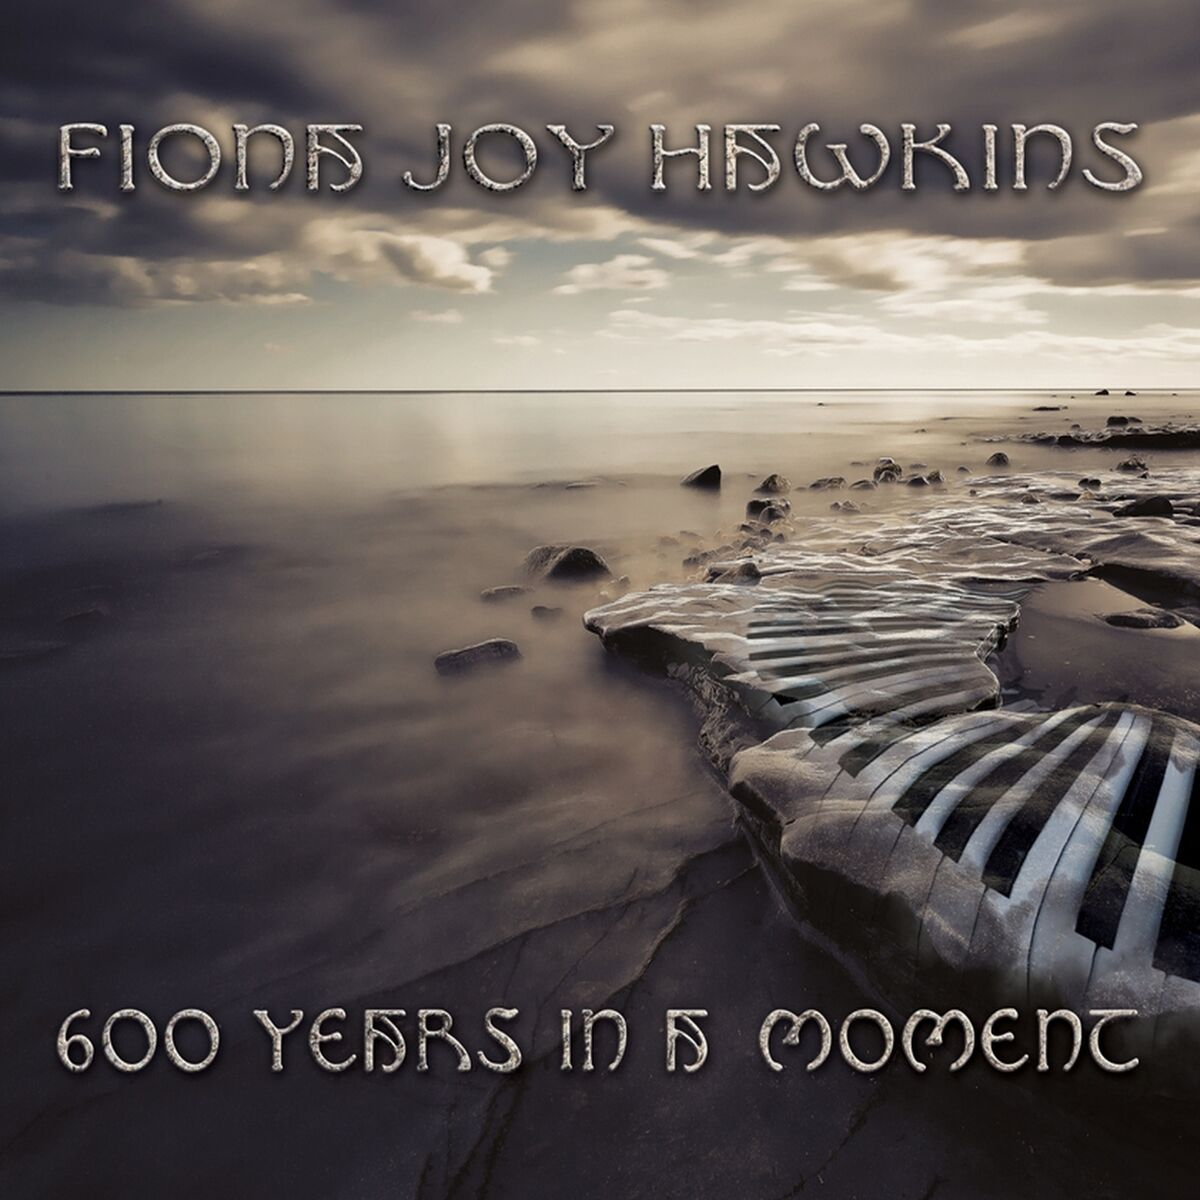 Fiona Joy Hawkins - 600 Years In A Moment - Cover Image